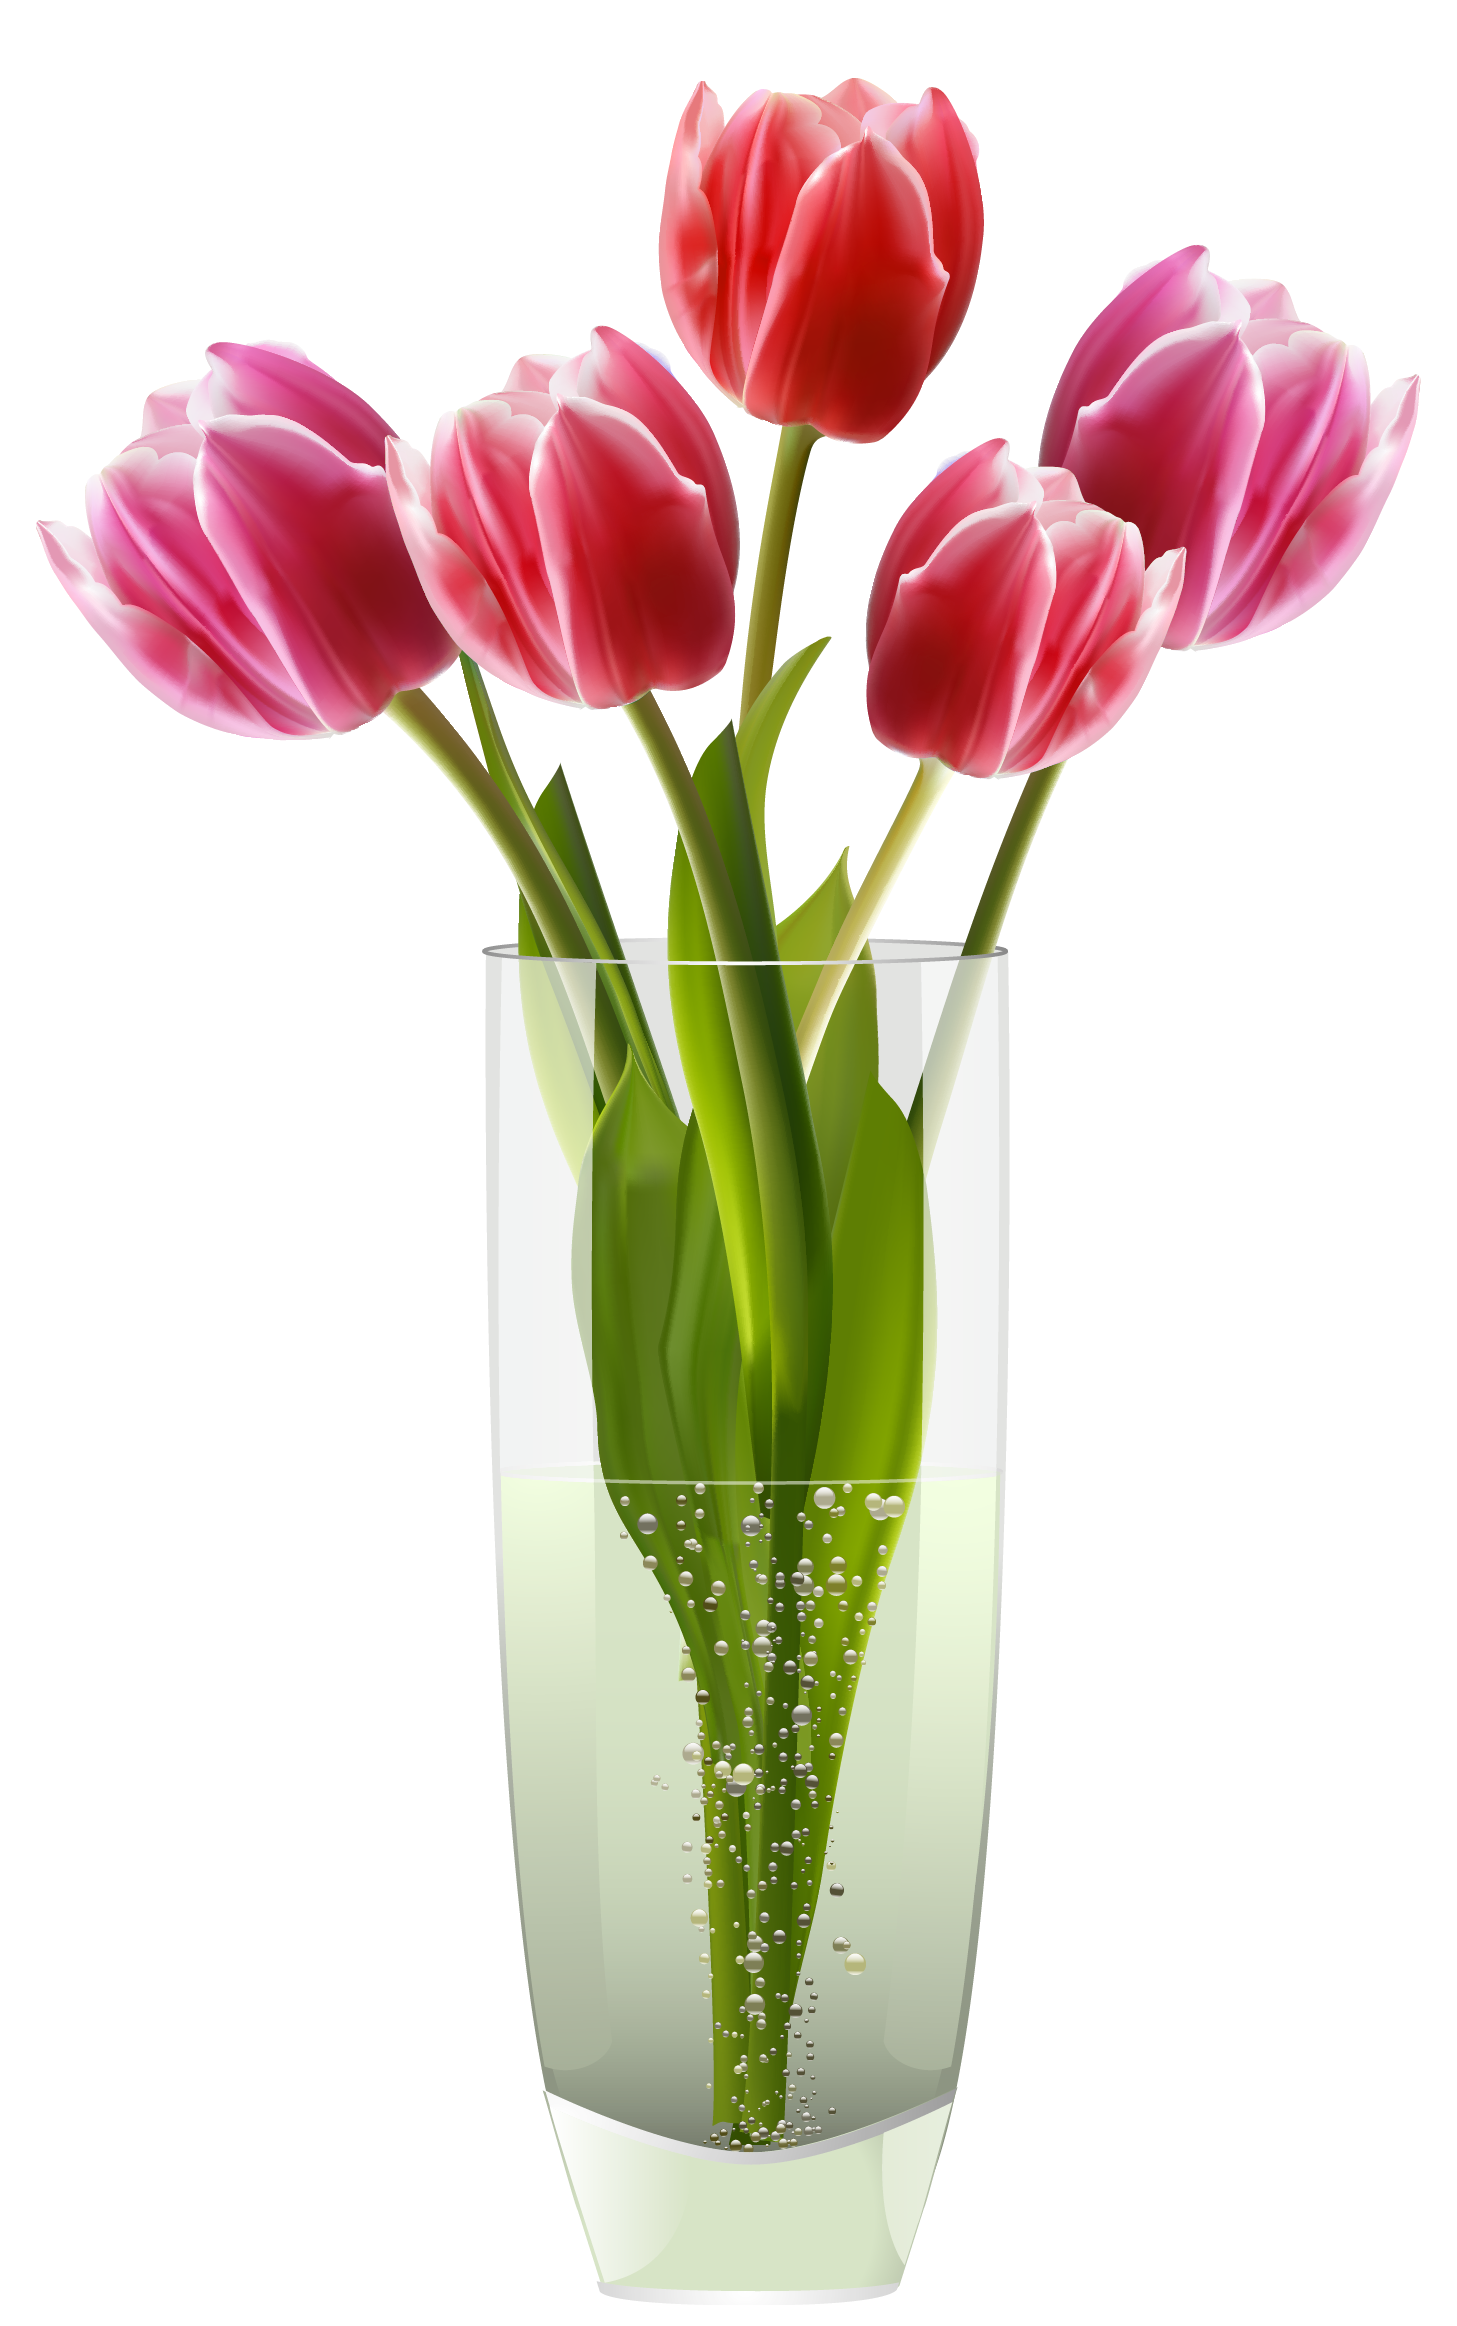 Flower in a vase clipart clipart black and white library flowers in vase - Google-Suche | flowers | Pinterest | Red tulips ... clipart black and white library